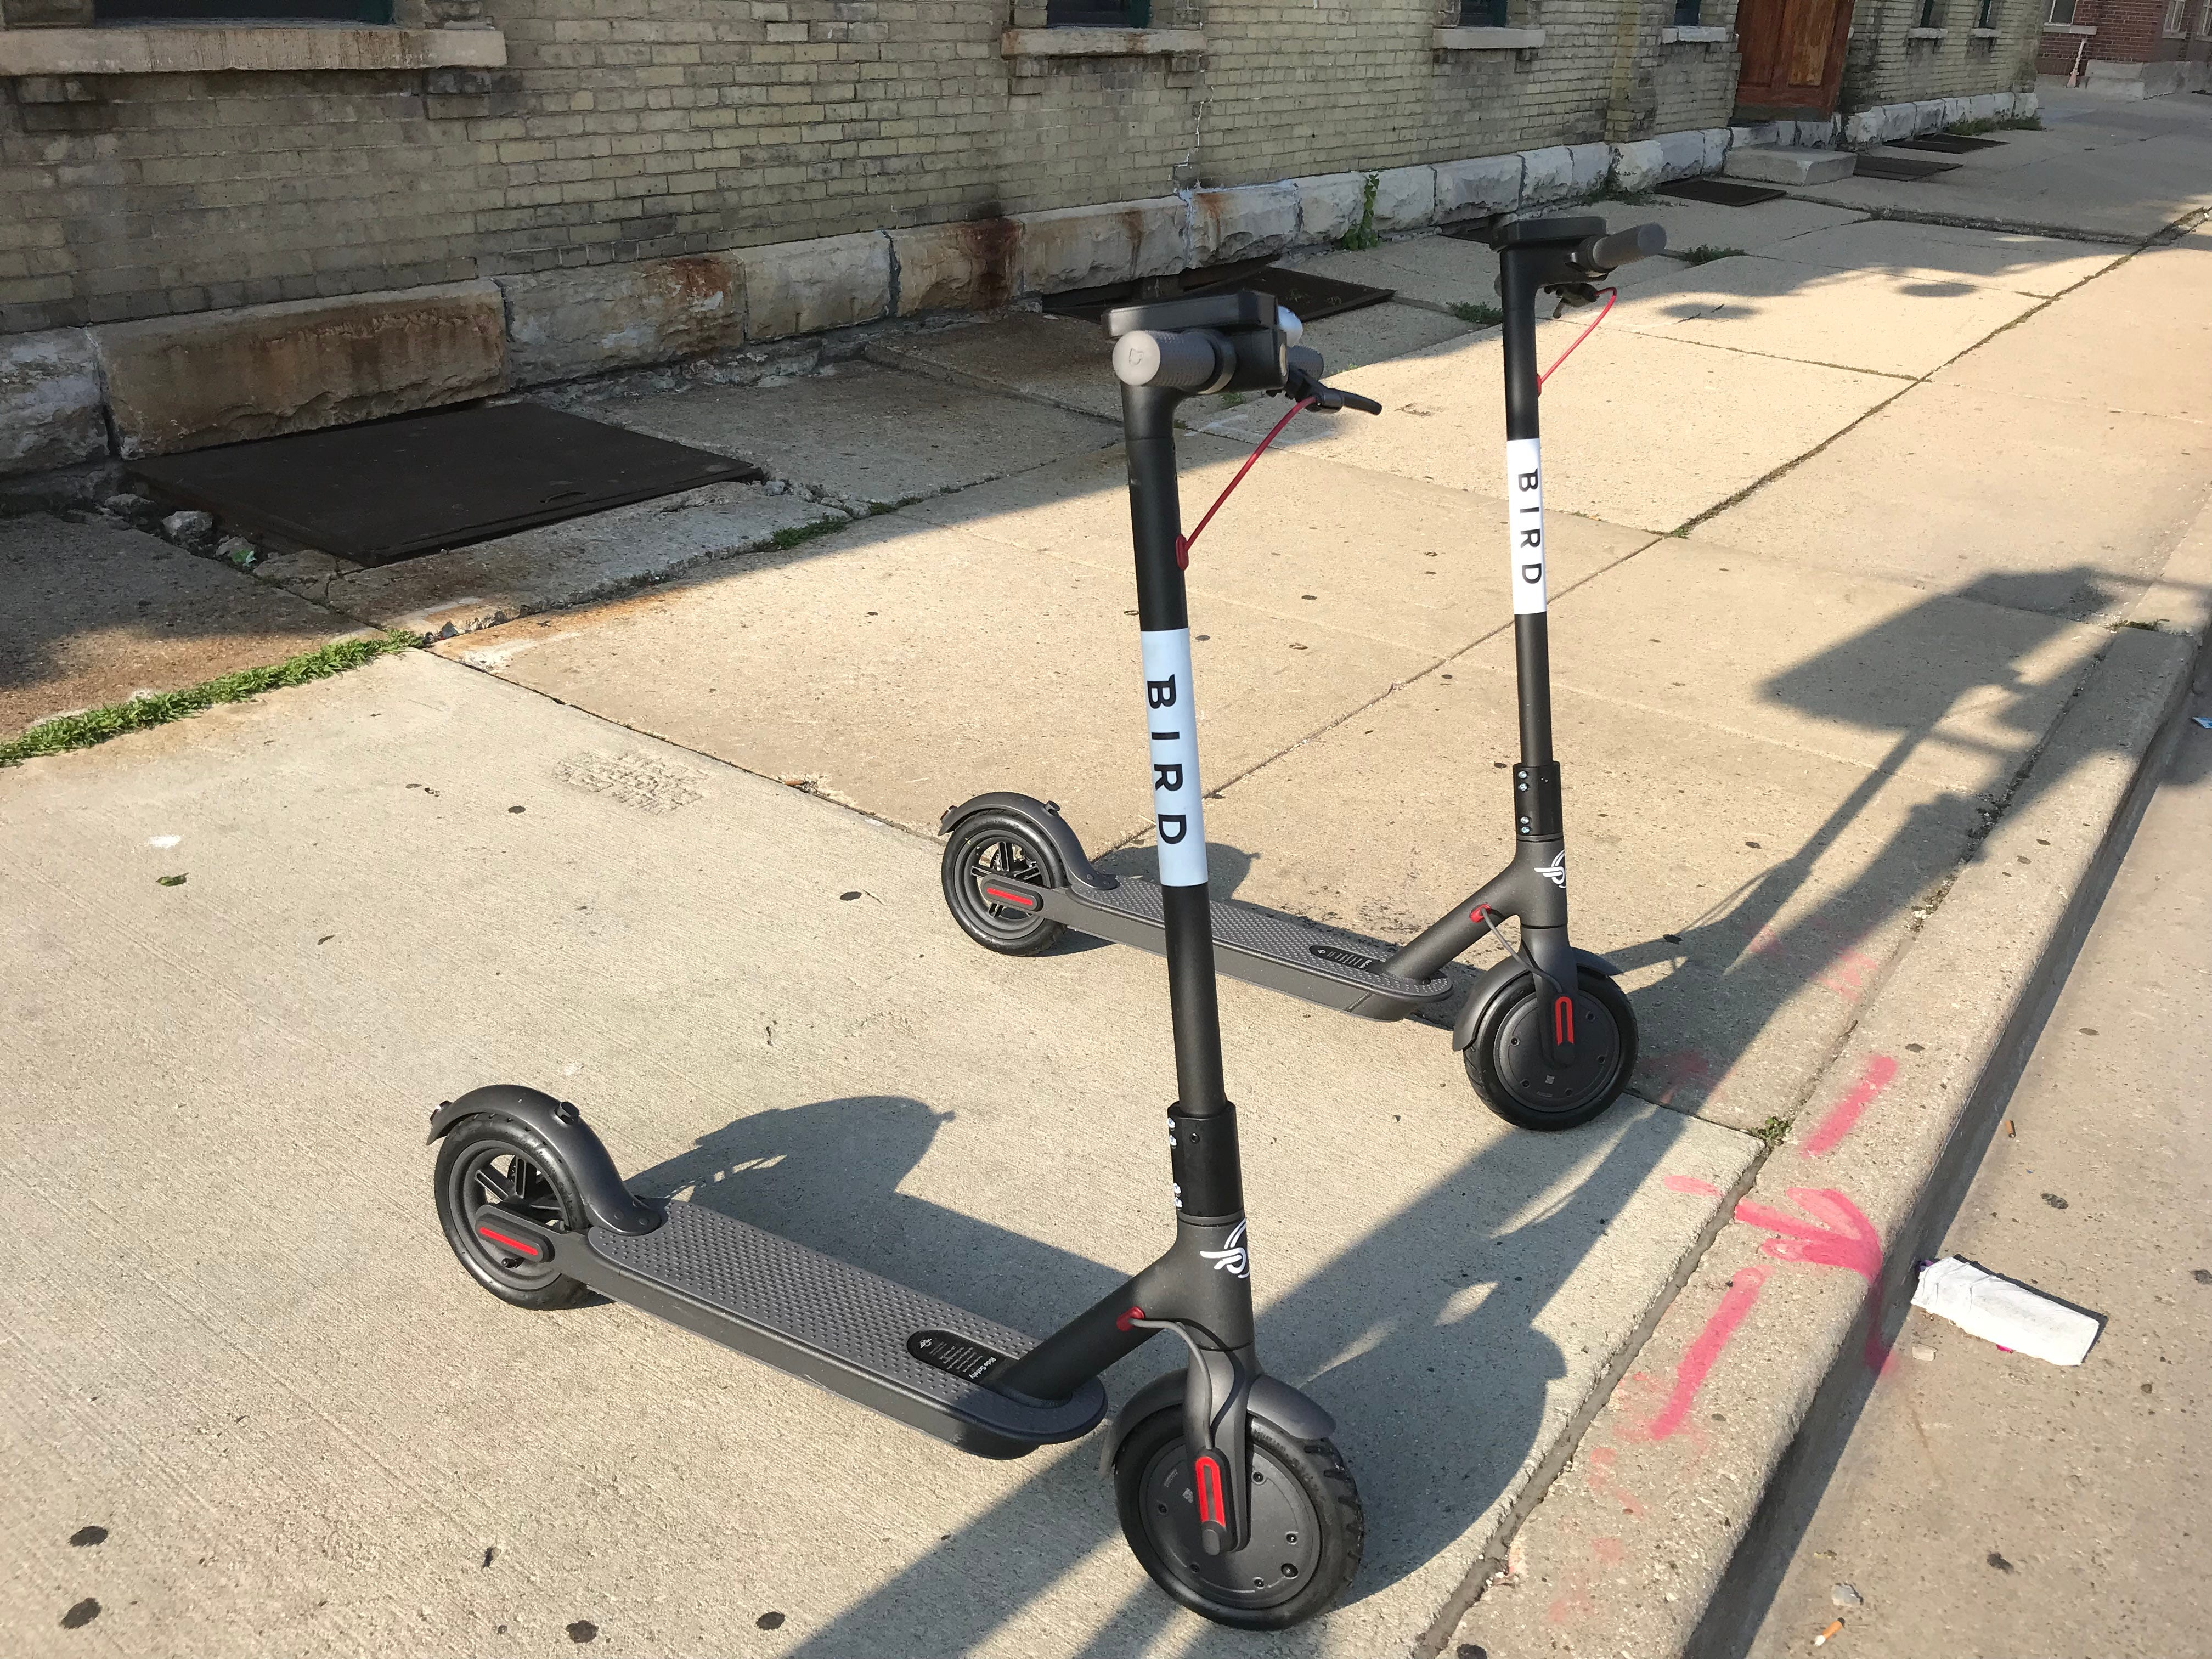 Milwaukee residents continue to dodge $100 citations as Bird scooter use spikes | Milwaukee Journal Sentinel